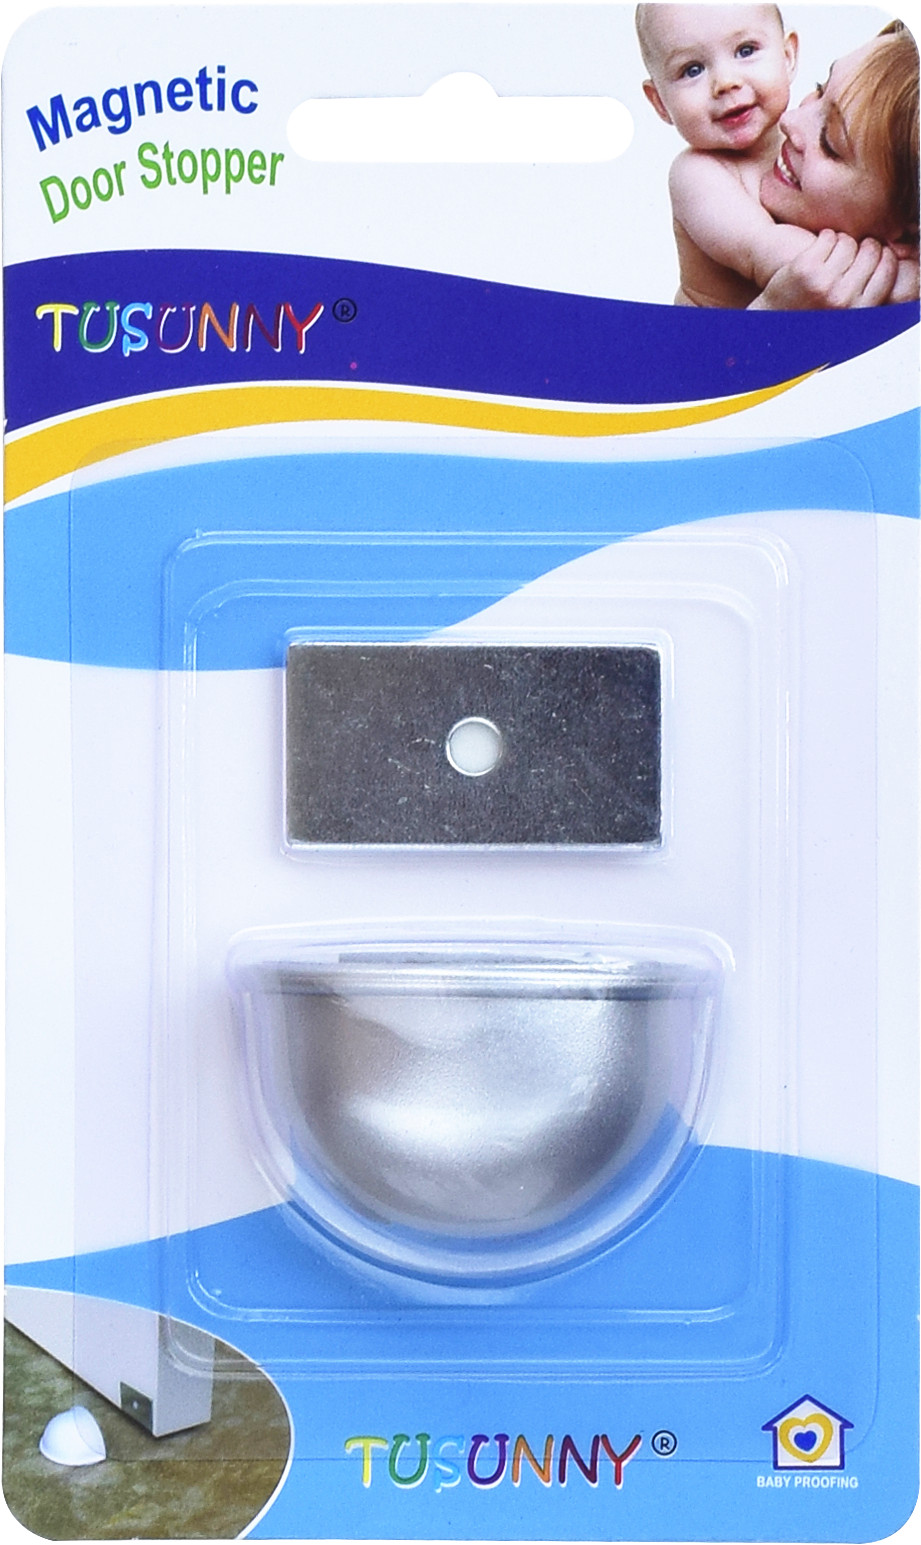 SH1.172W Baby Safety Magnetic Door Stopper